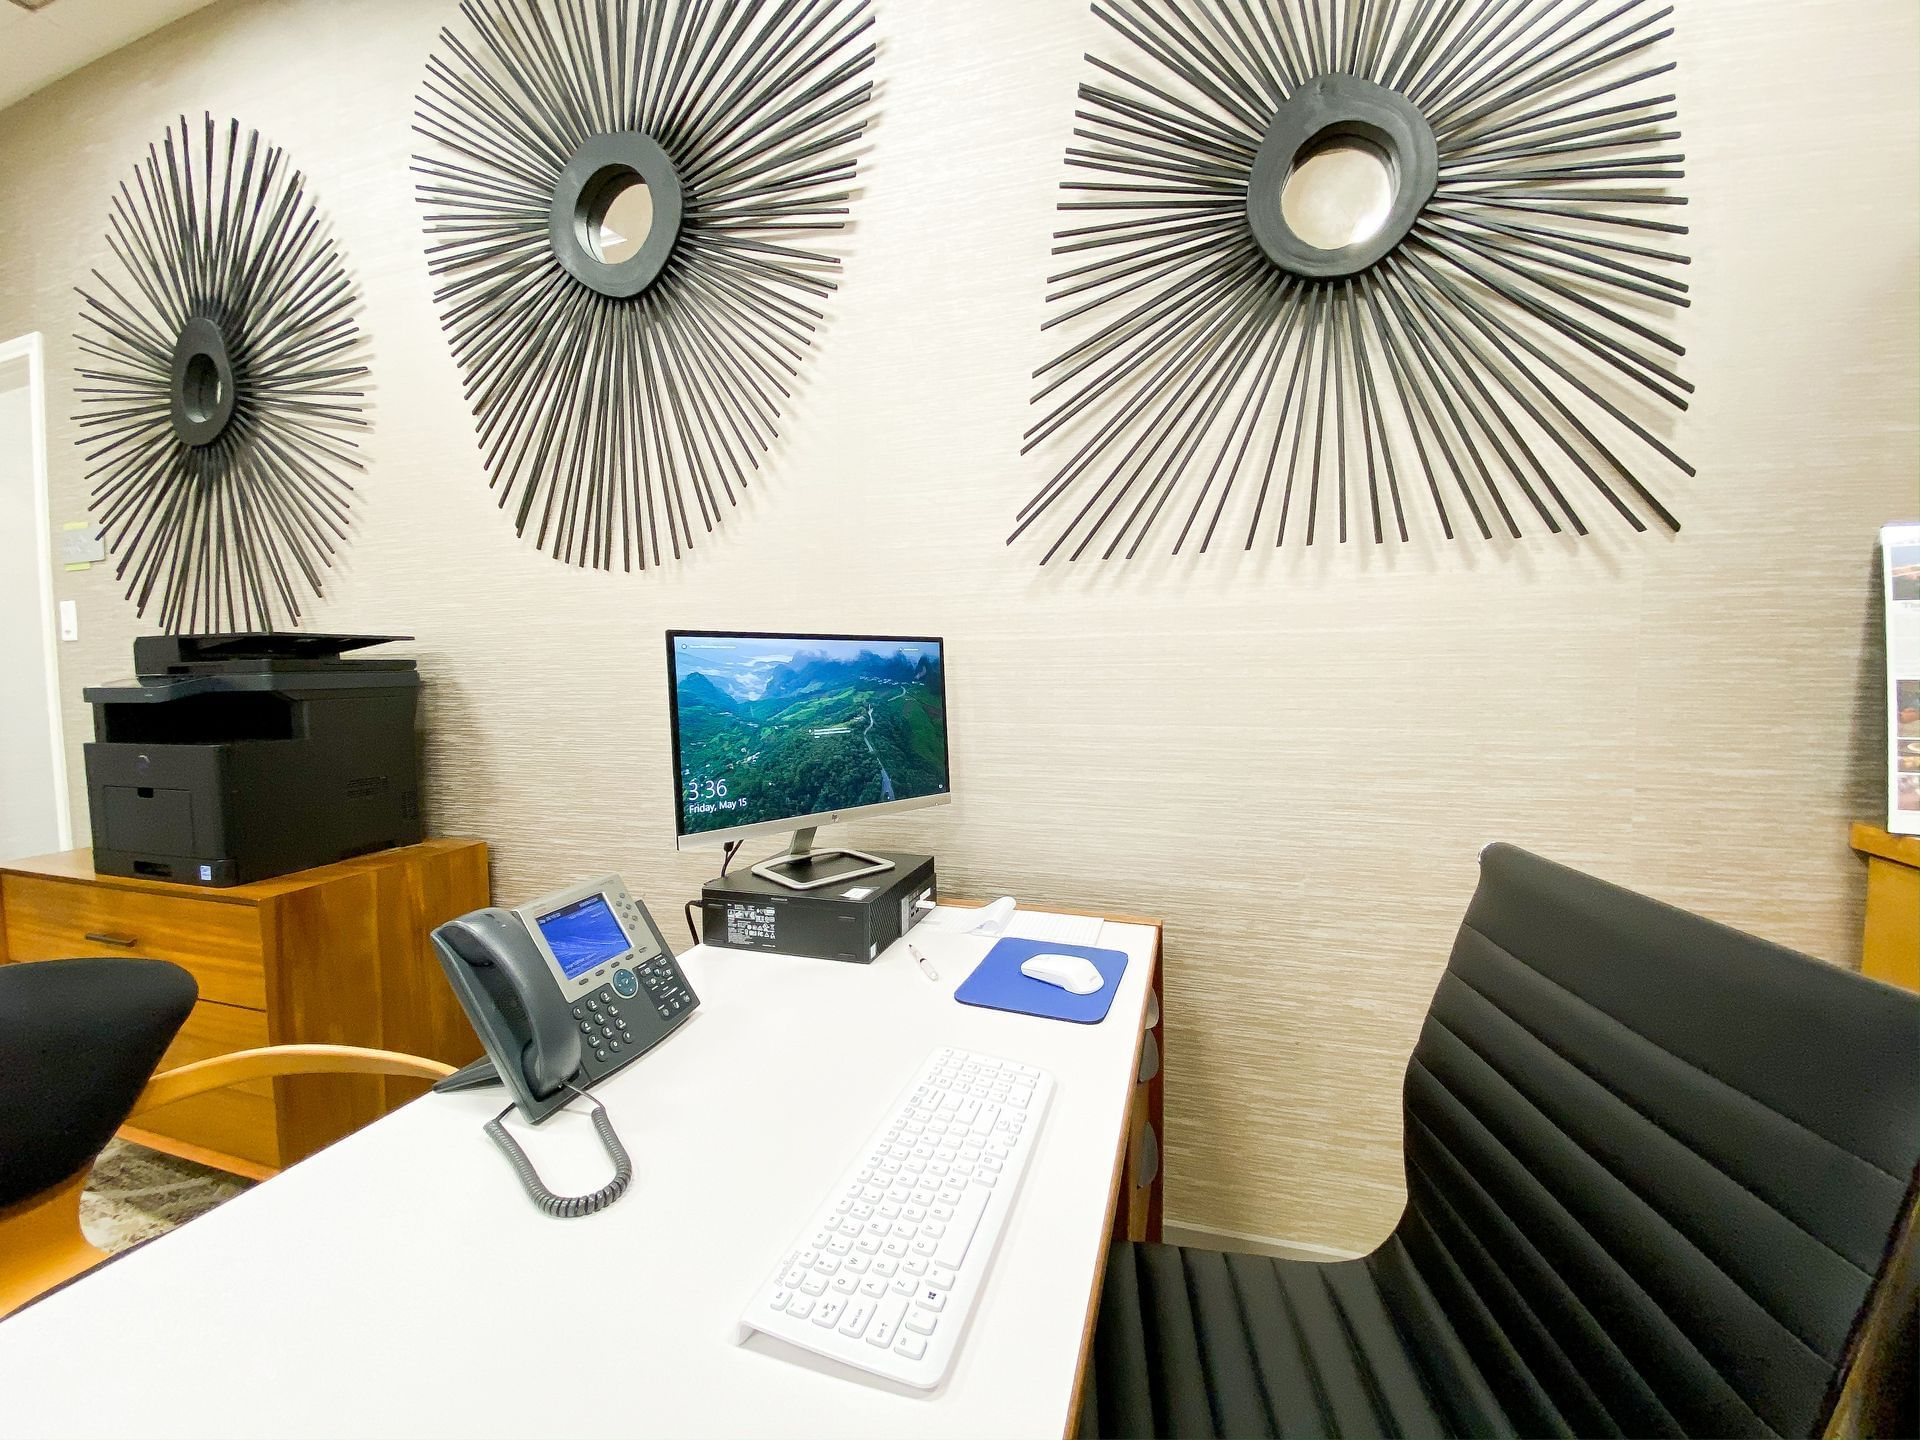 a desk with a computer and phone